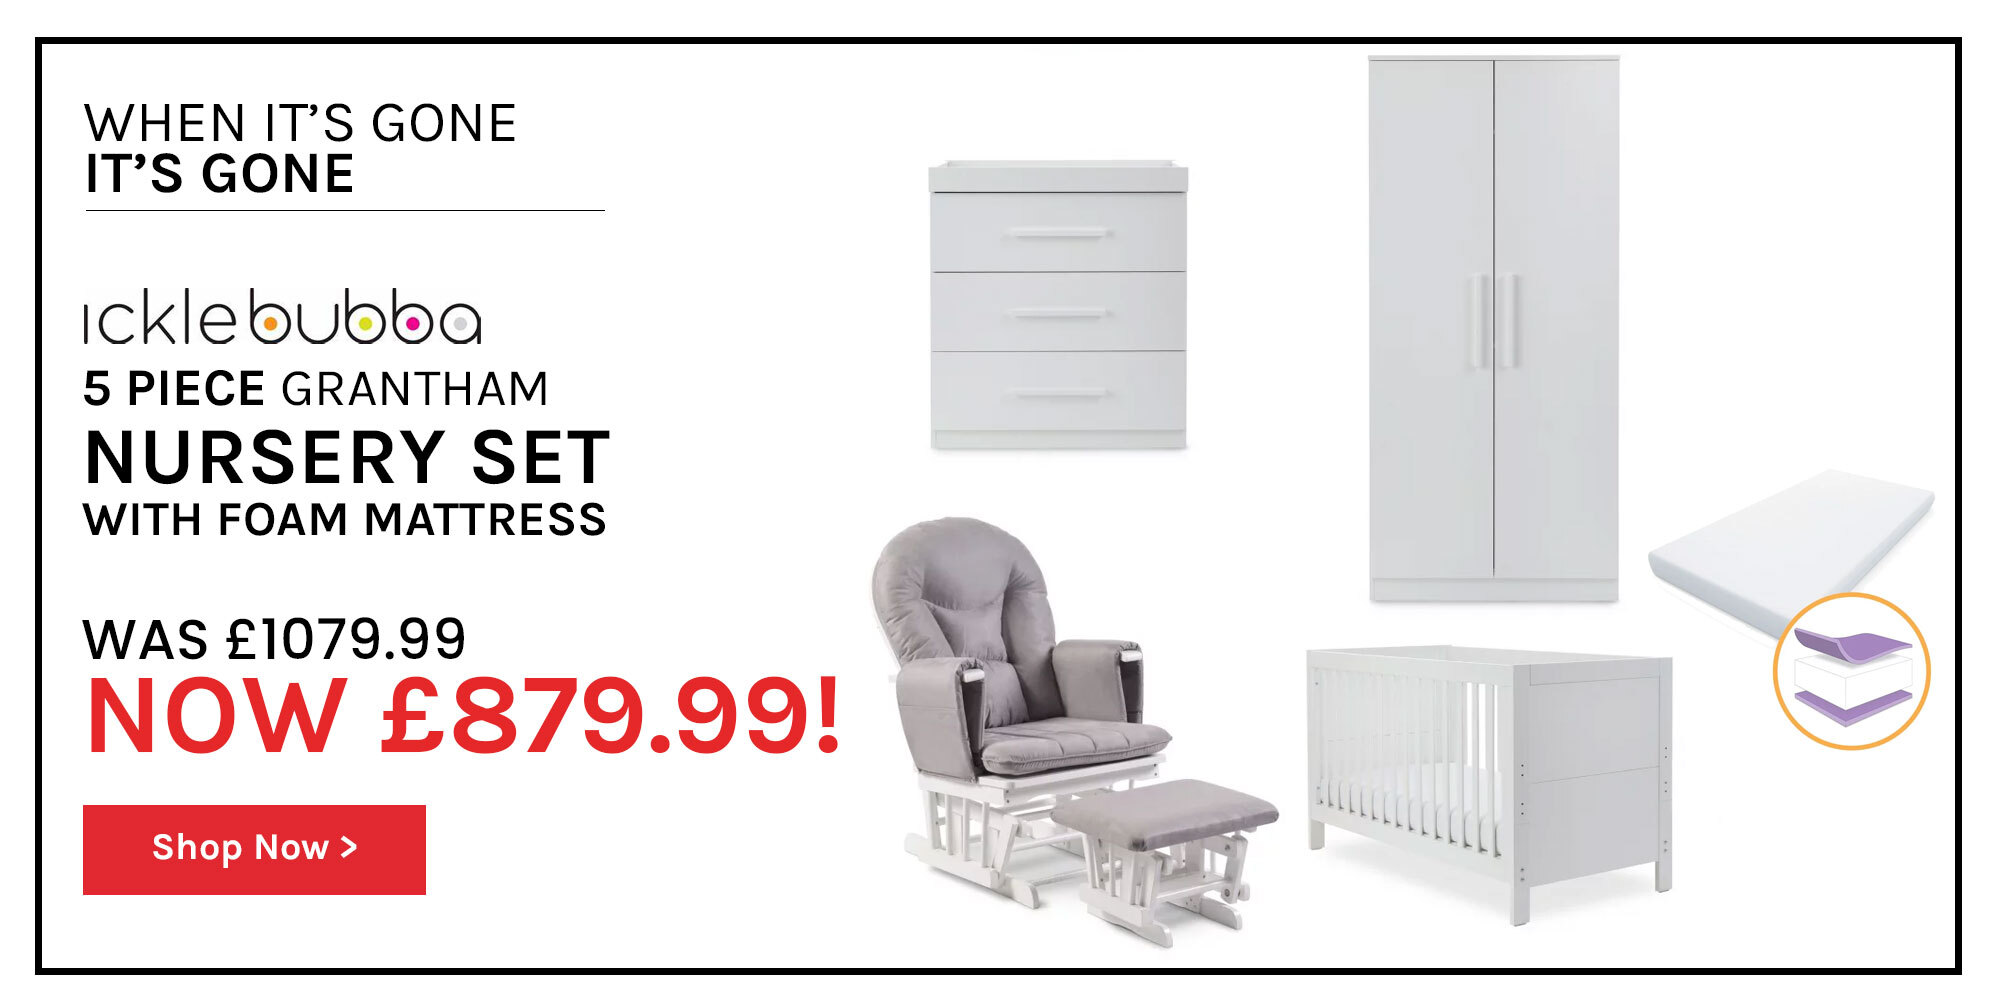 Ickle Bubba Offer Black Friday